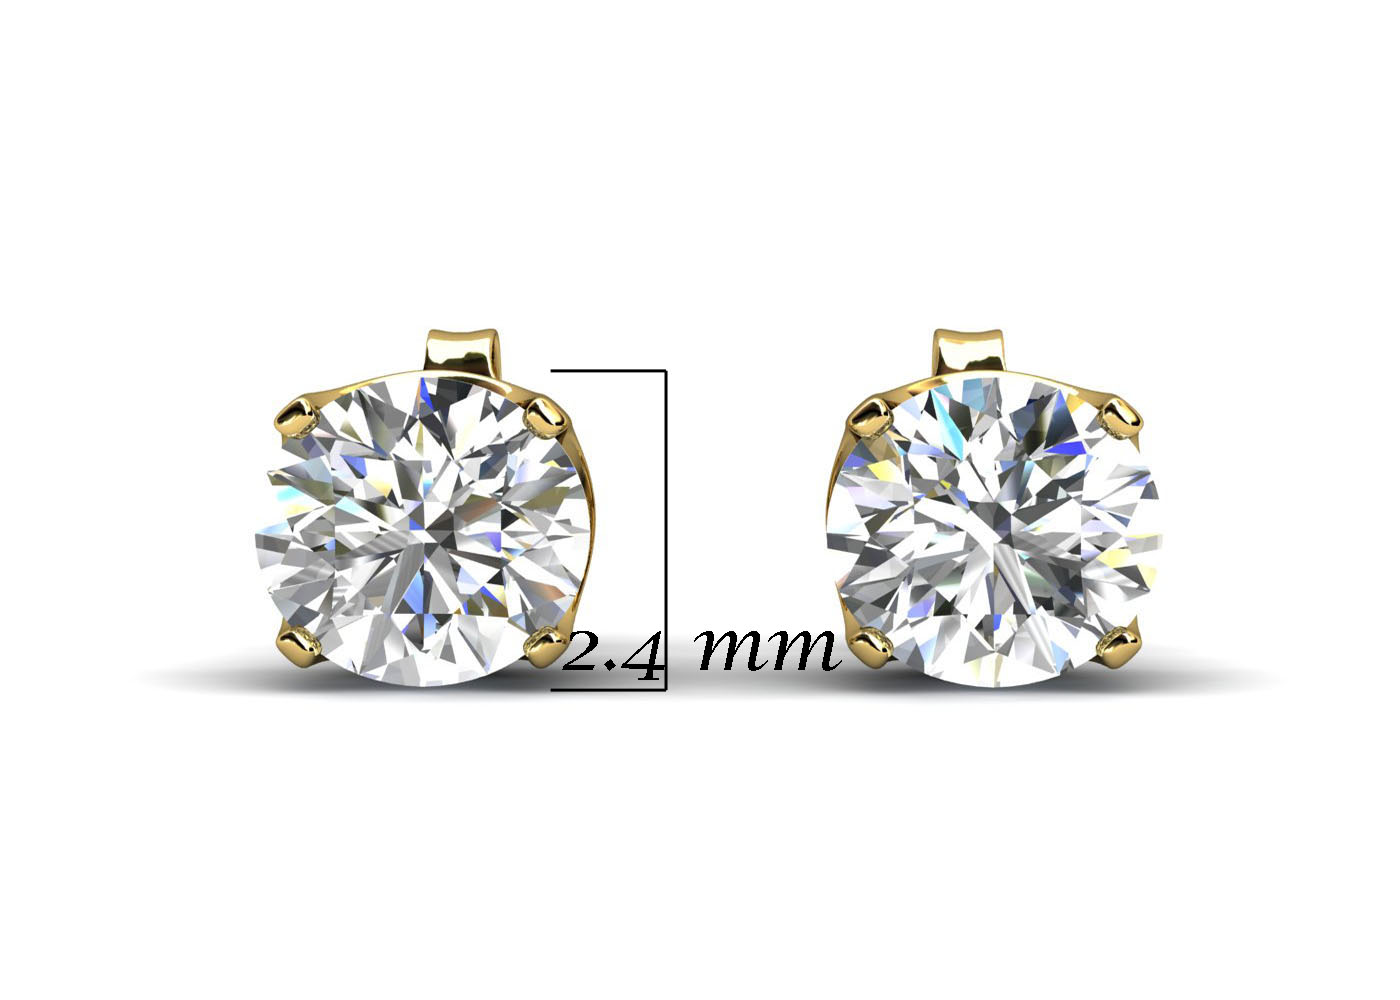 9ct Claw Set Diamond Earrings 0.40 Carats - Image 6 of 9